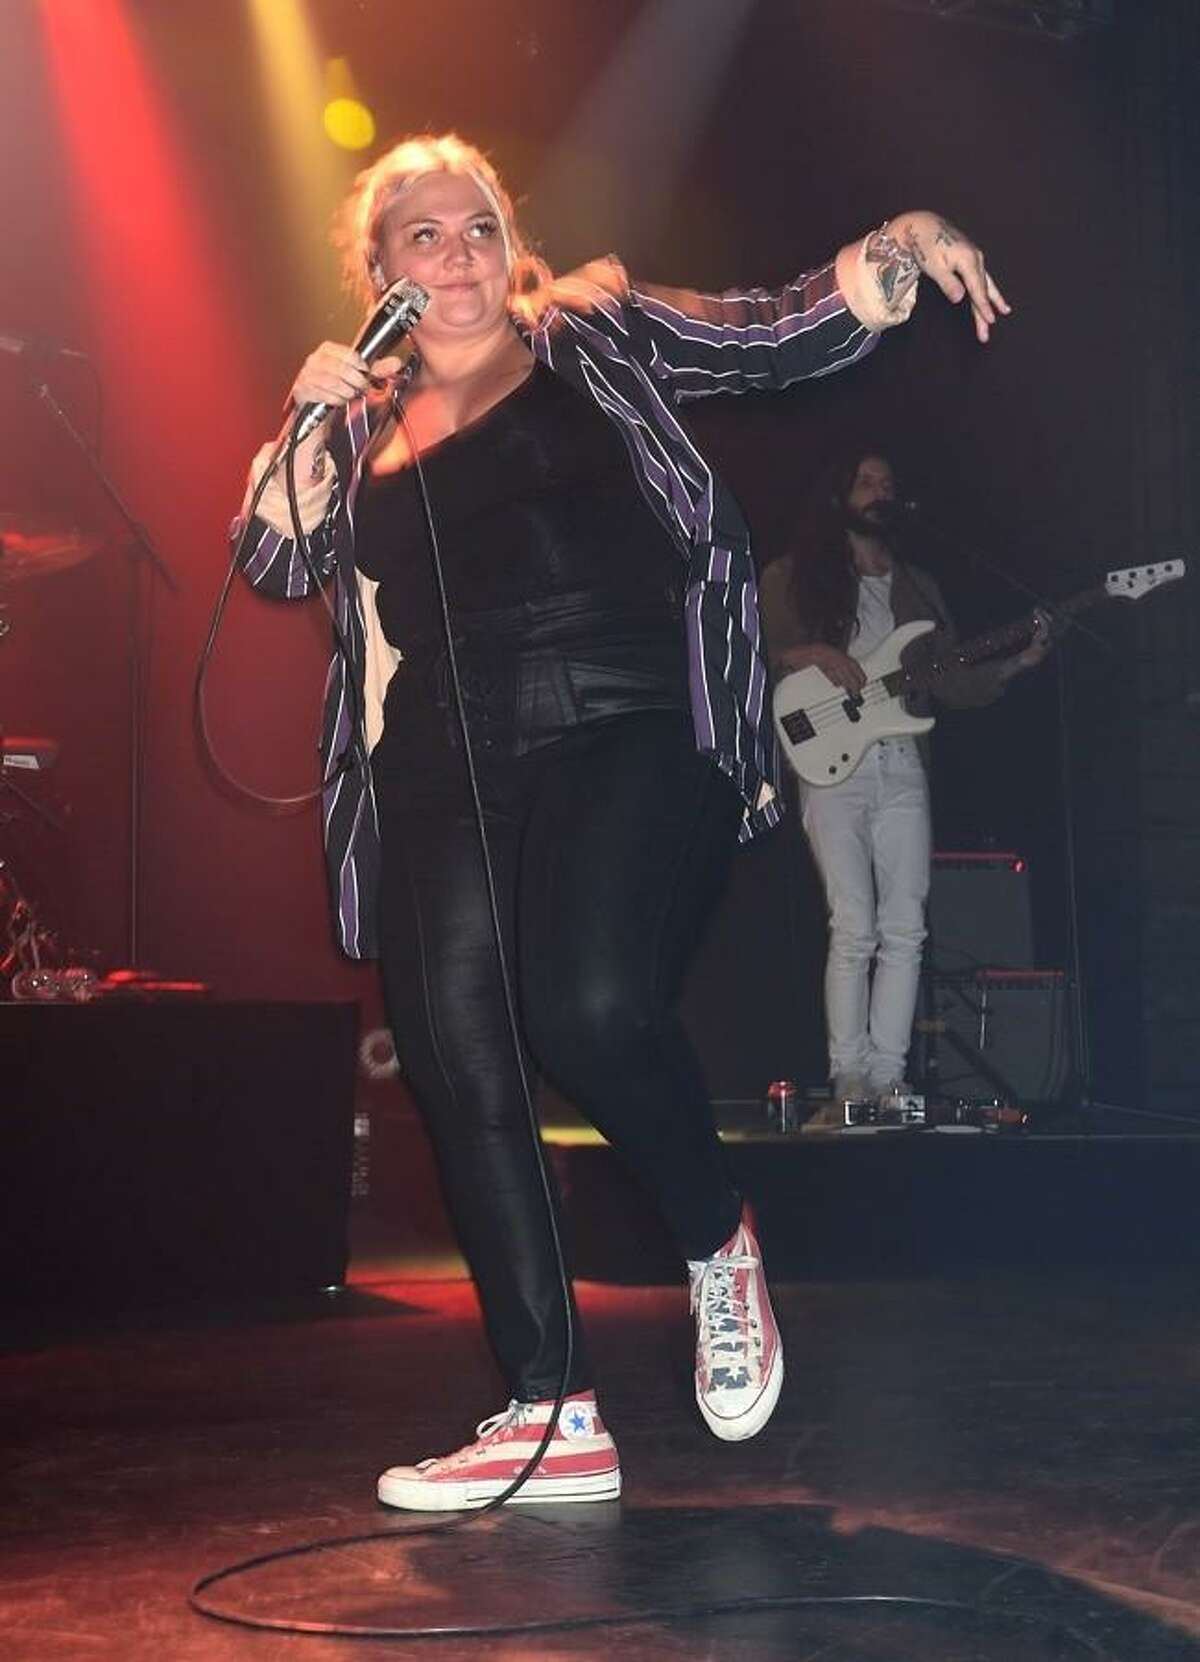 Singer, songwriter, and actress Elle King is shown dancing on stage during her Nov. 3 performance at the College Street Music Hall in New Haven. In 2012, King released her debut EP, ?